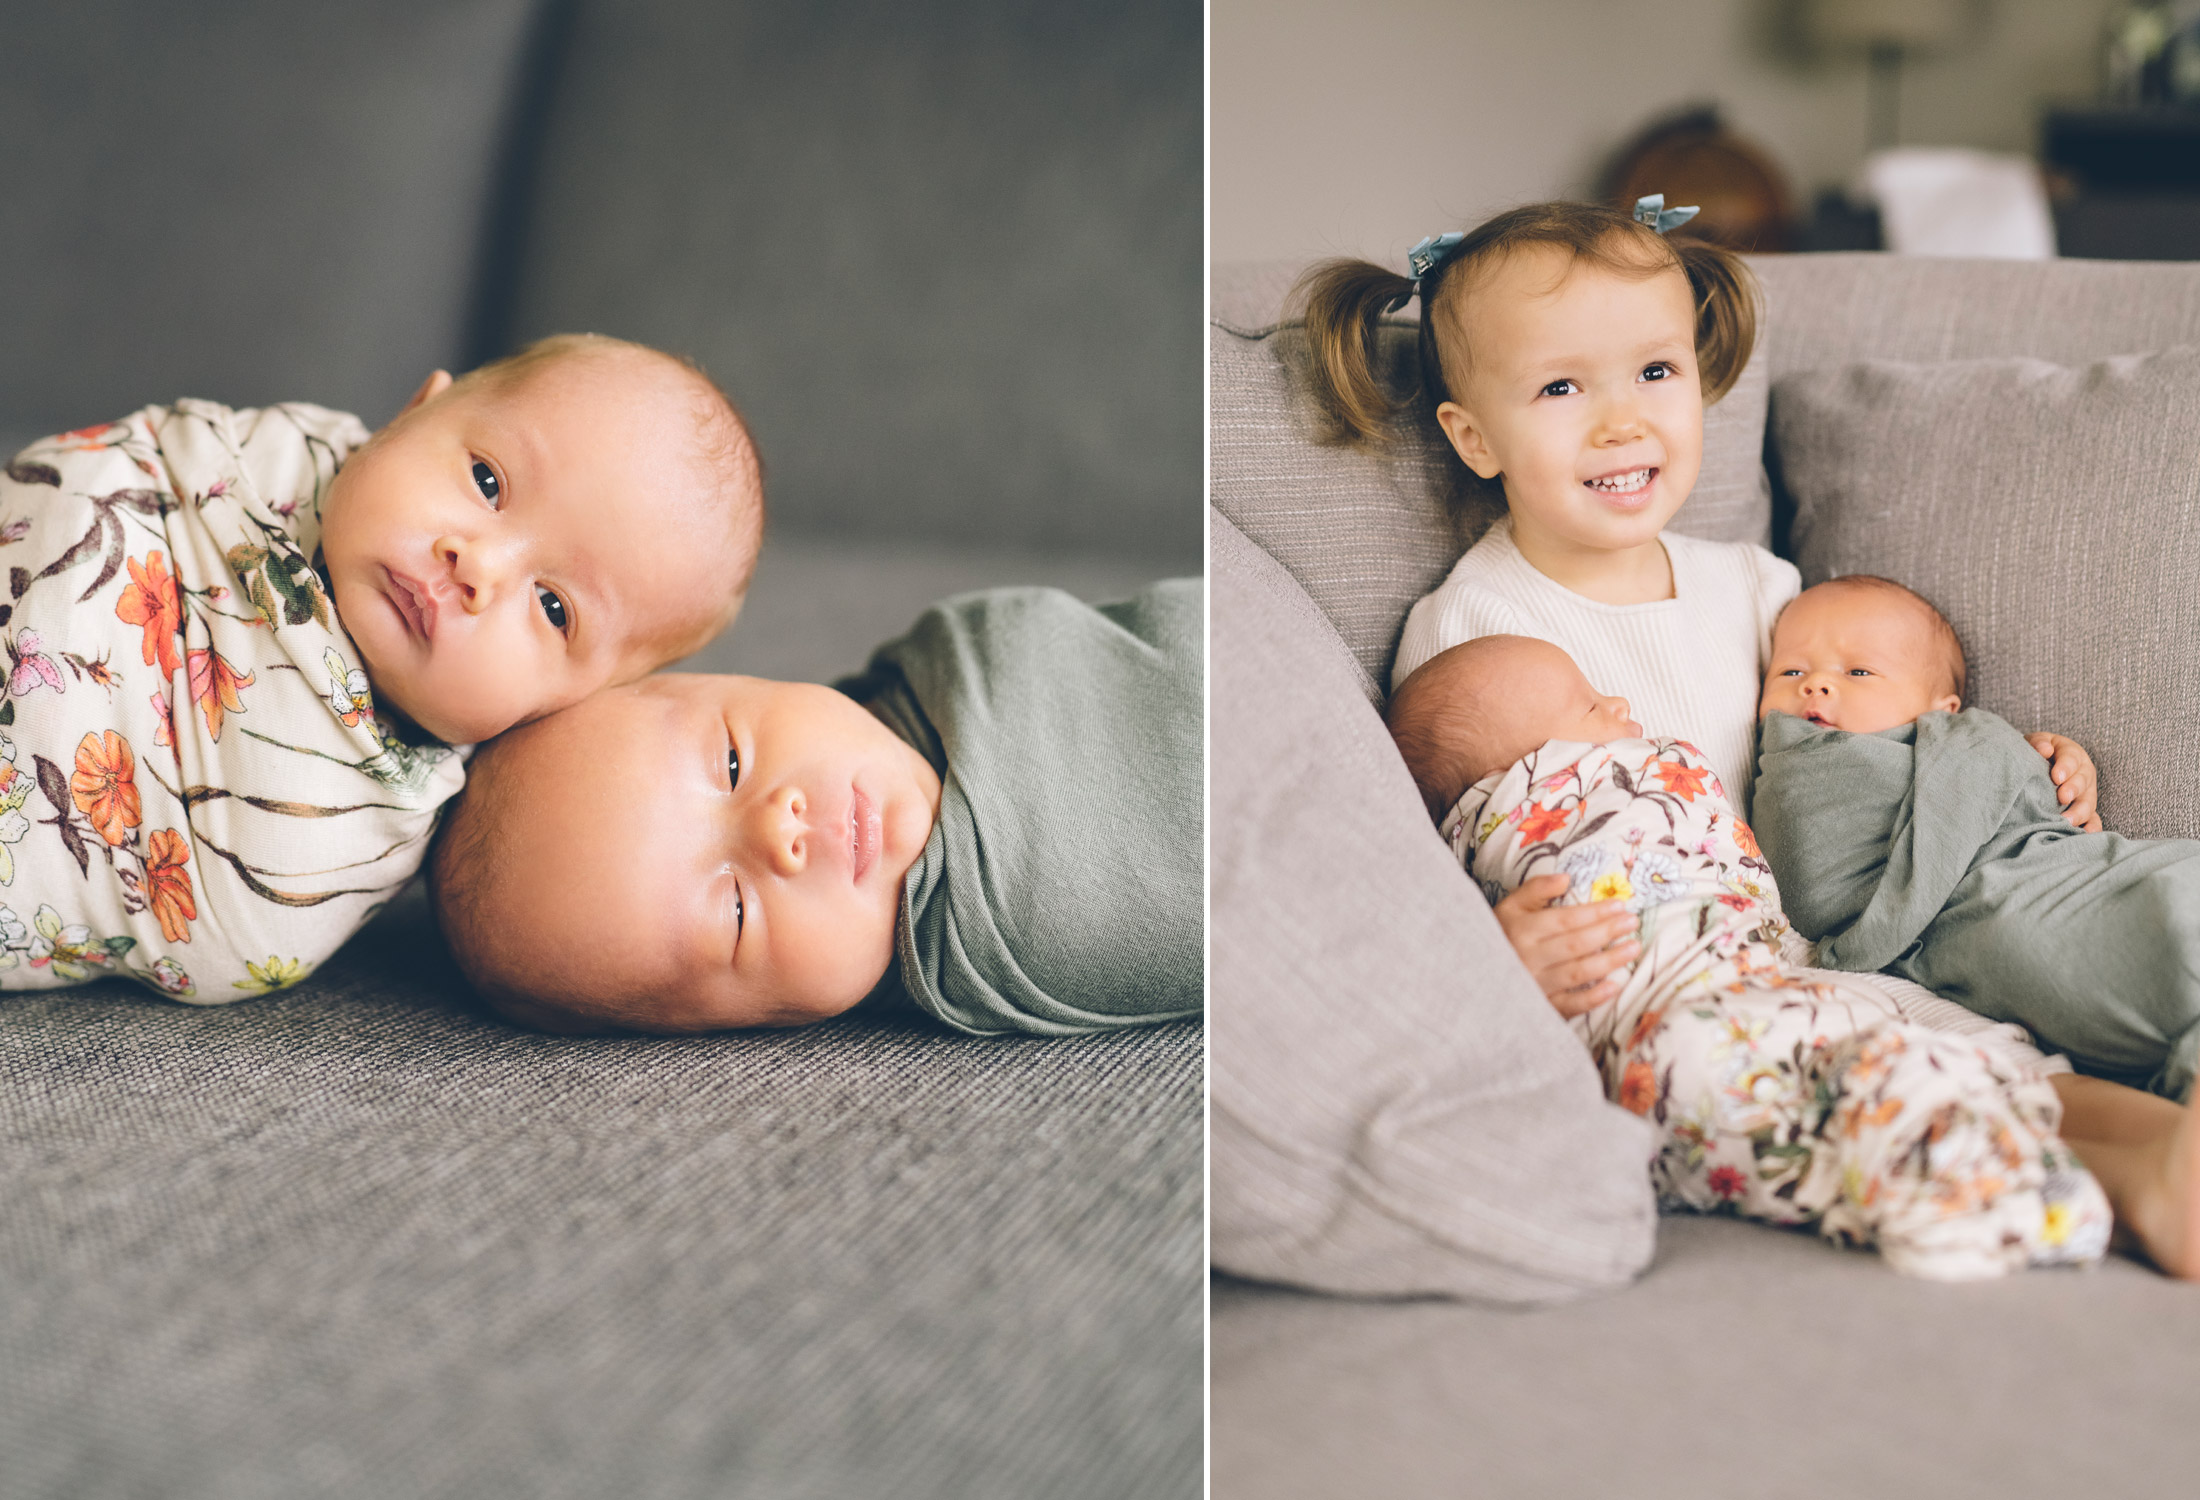 newborn-baby-twins-and-sister.jpg